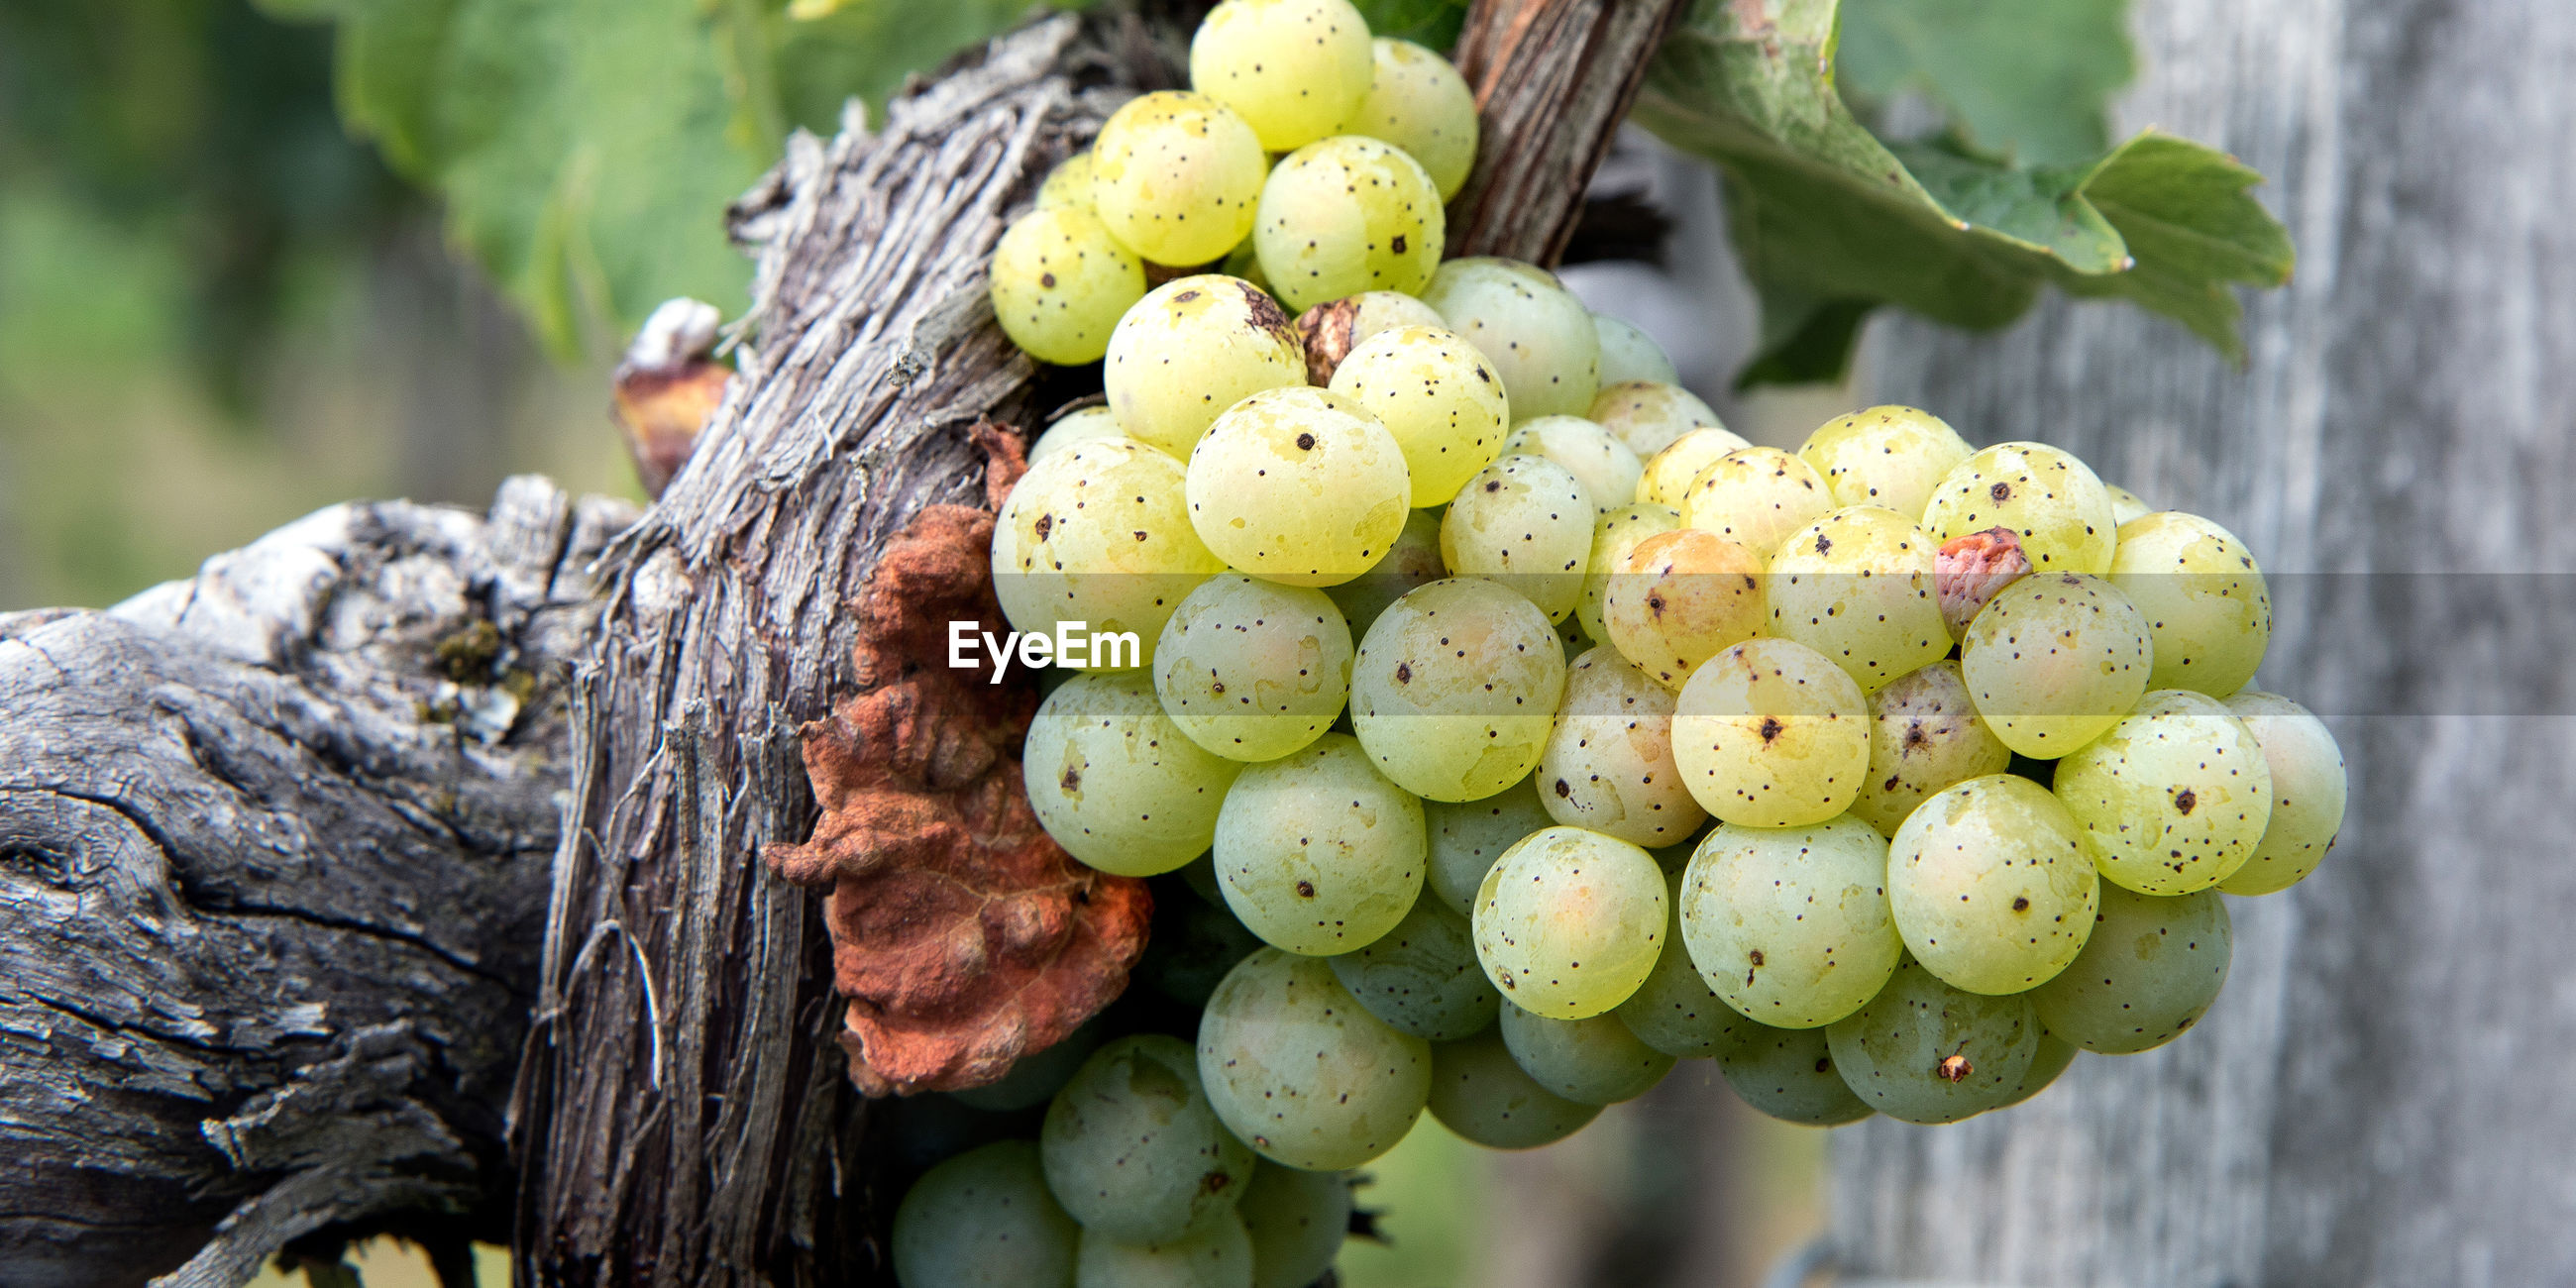 CLOSE-UP OF GRAPES IN TREE